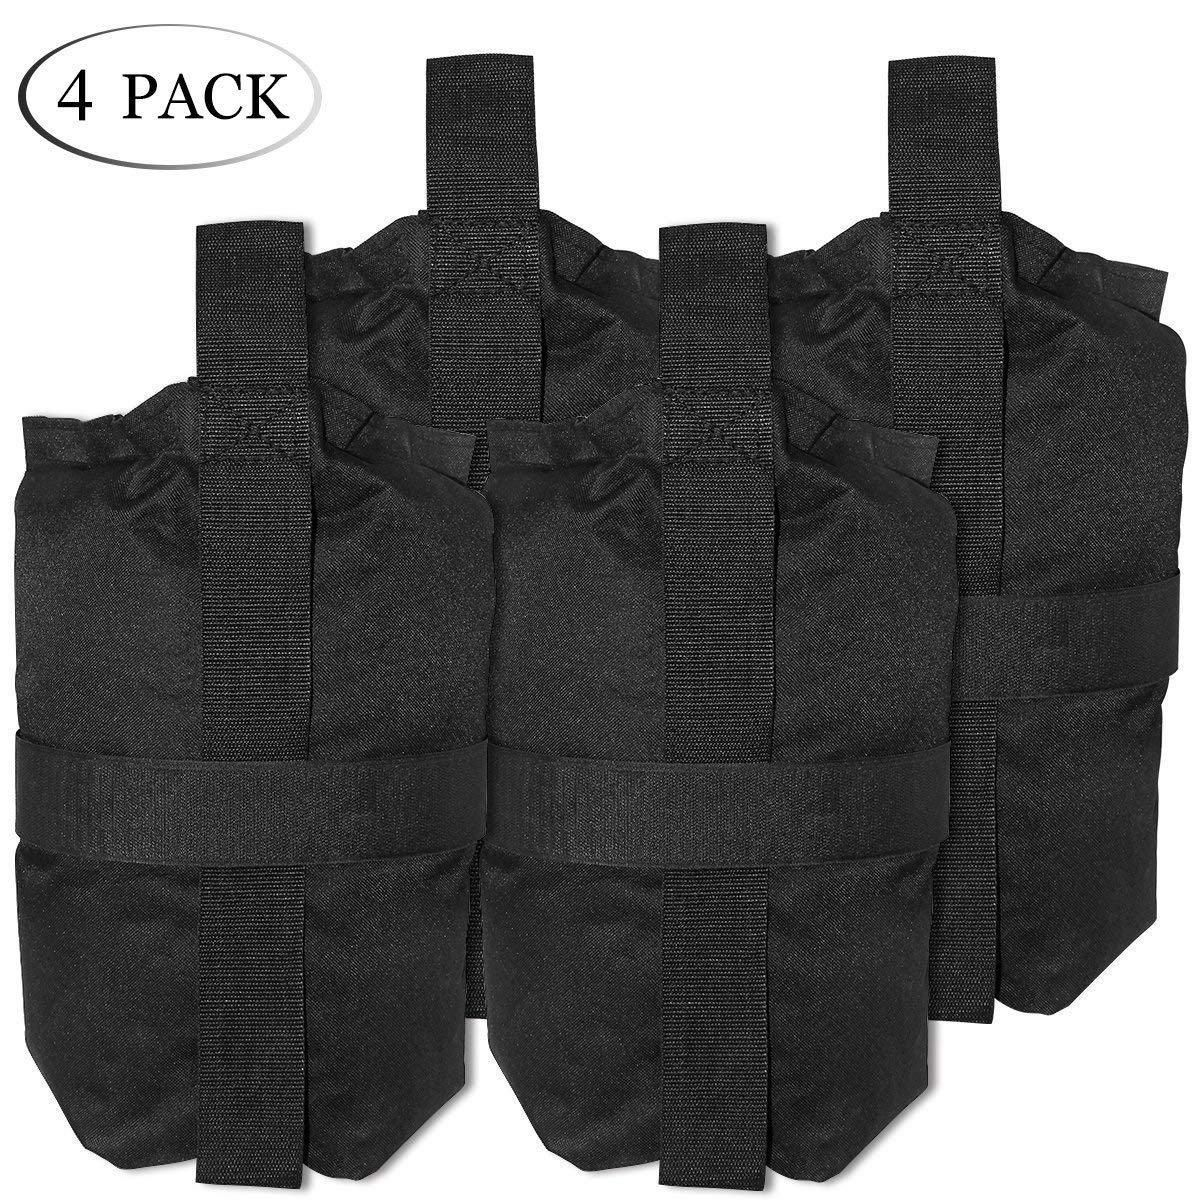 9ec14fb5eafe TopCamp 4 Packs Sand Bags for Camping Tent, Weight Bags for Pop up ...